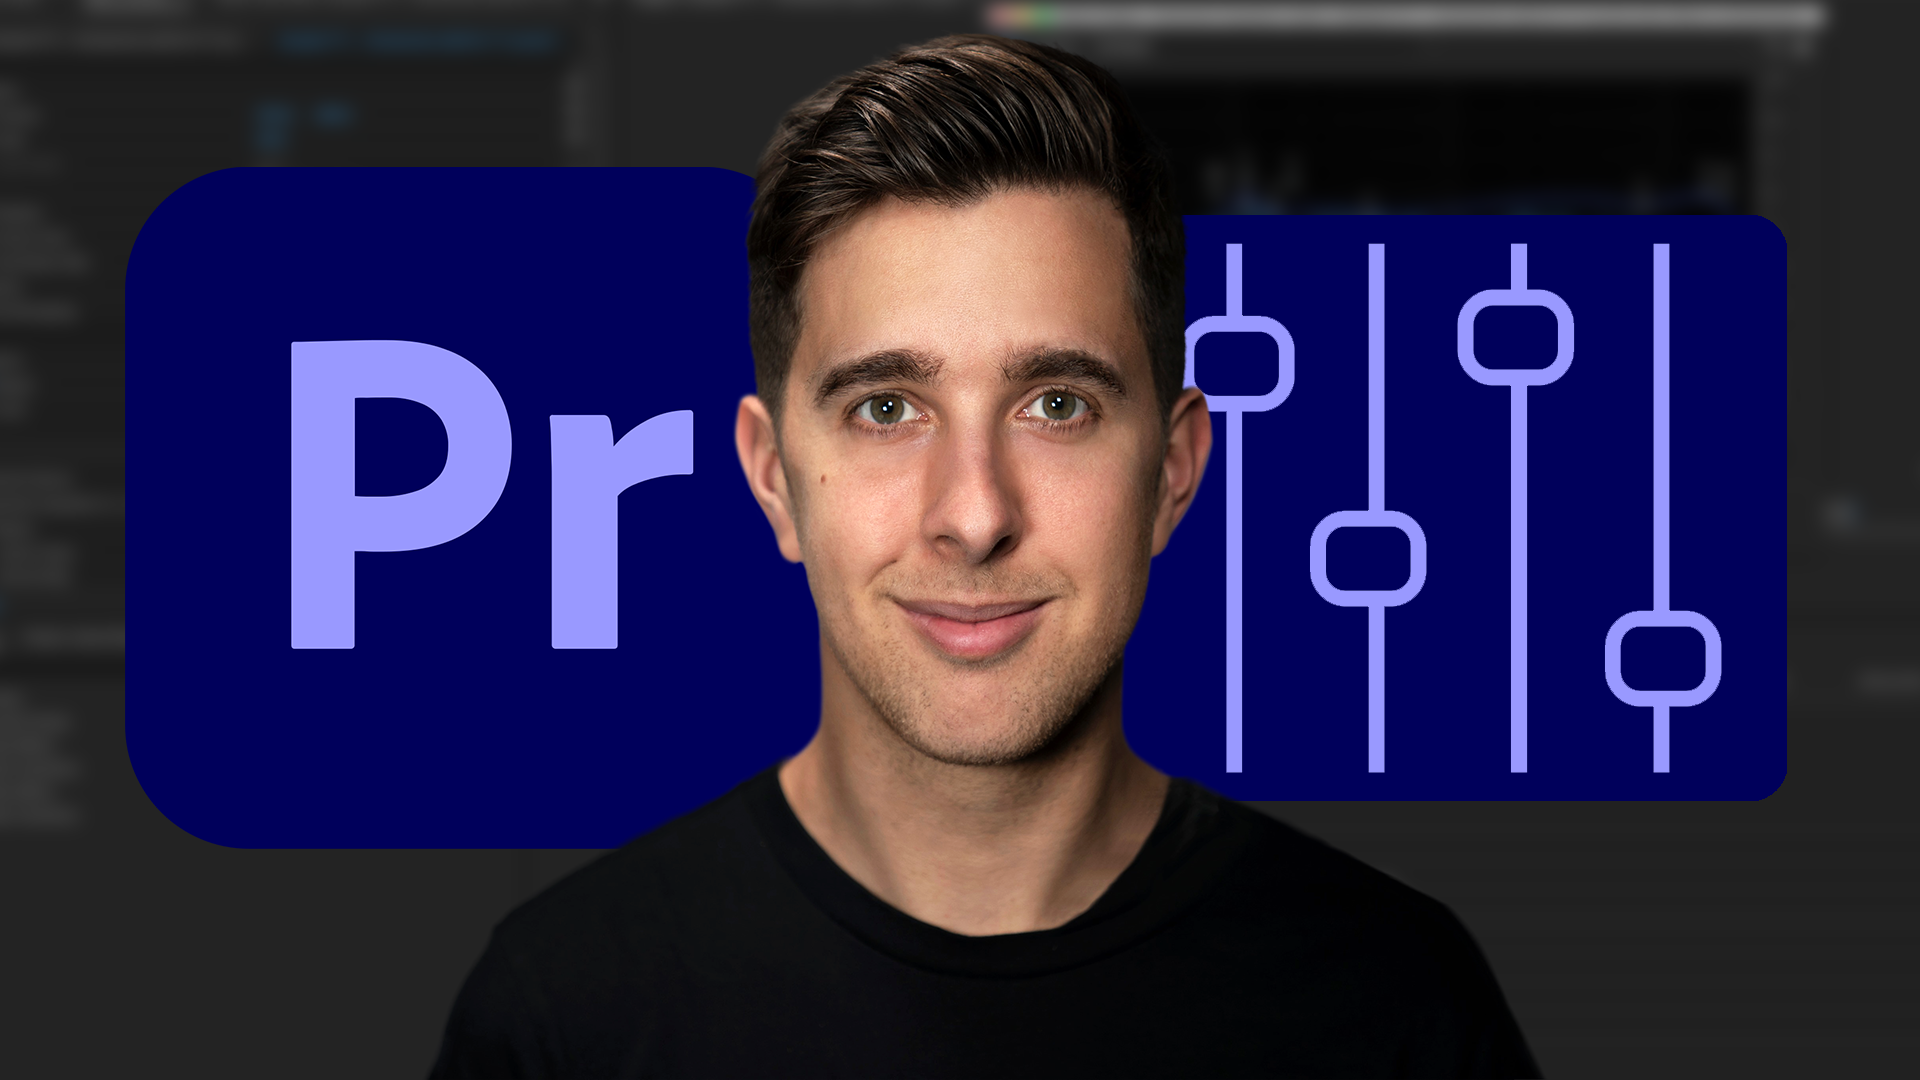 Audio Mixing and Processing Voice in Adobe Premiere Pro